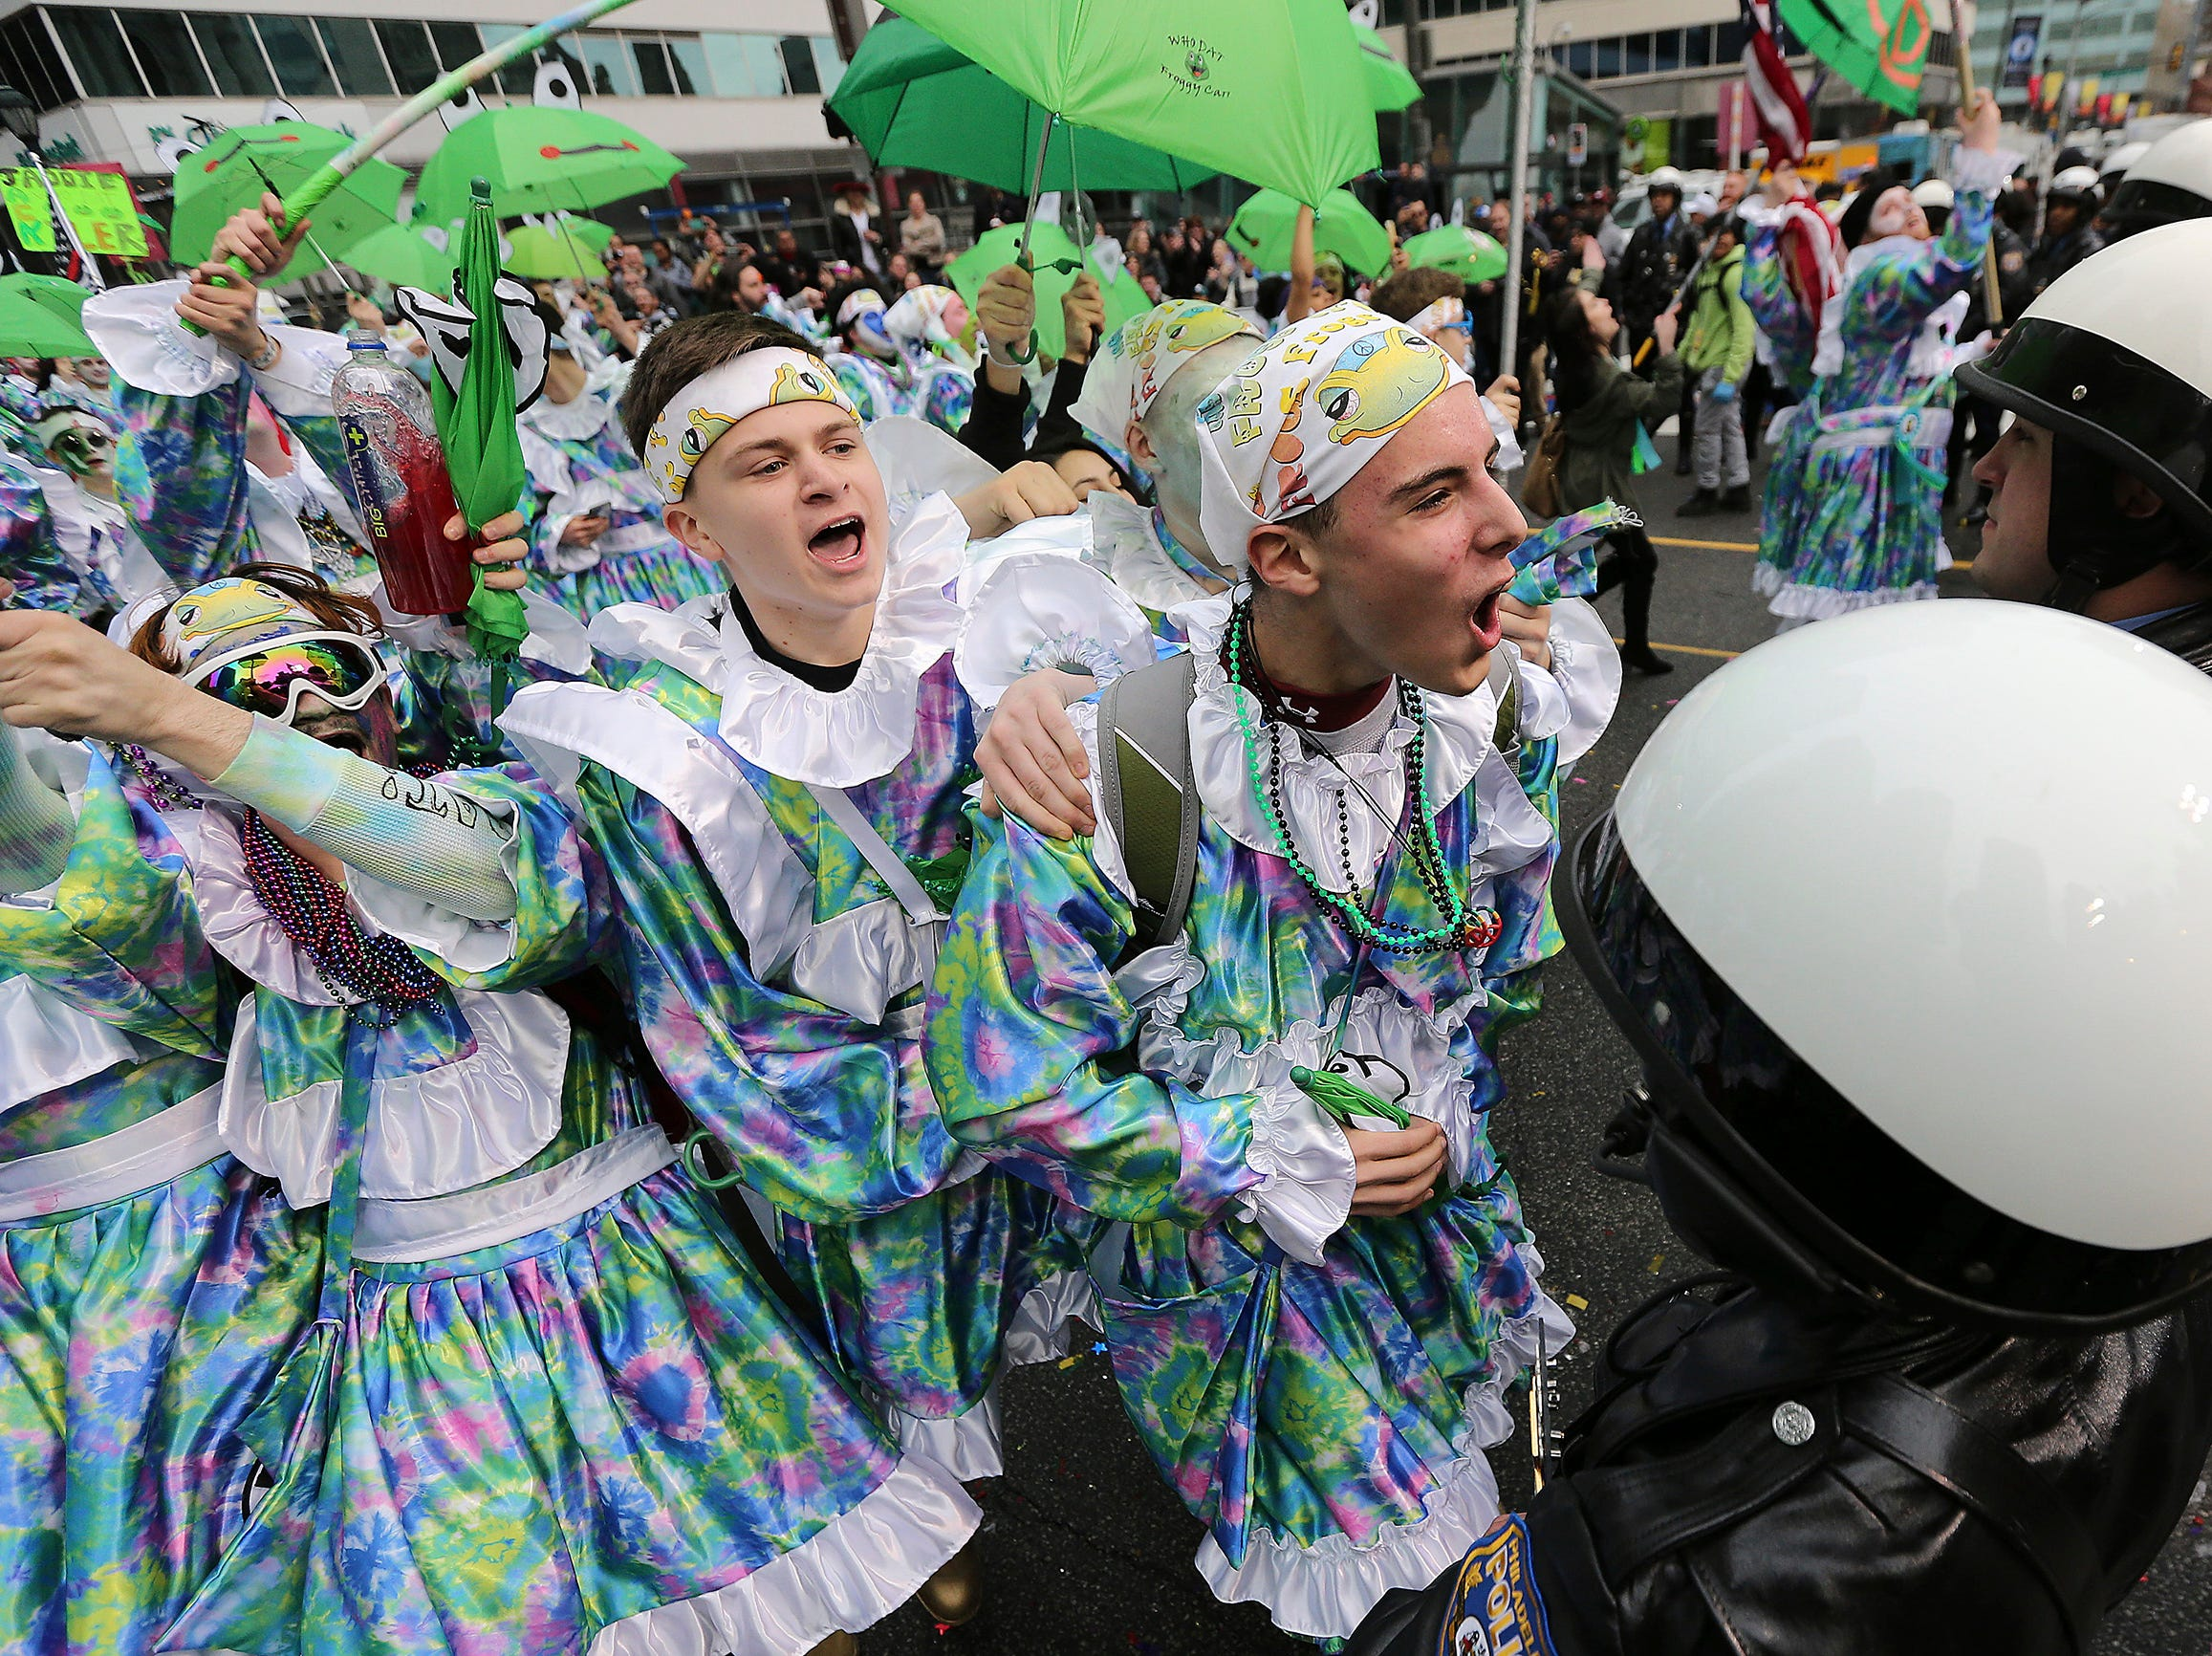 Members of Froggy Carr Wench Brigade strut in front of a row of police at City Hall during the Mummers Parade, Tuesday, Jan. 1, 2019, in Philadelphia. (David Maialetti/The Philadelphia Inquirer via AP)